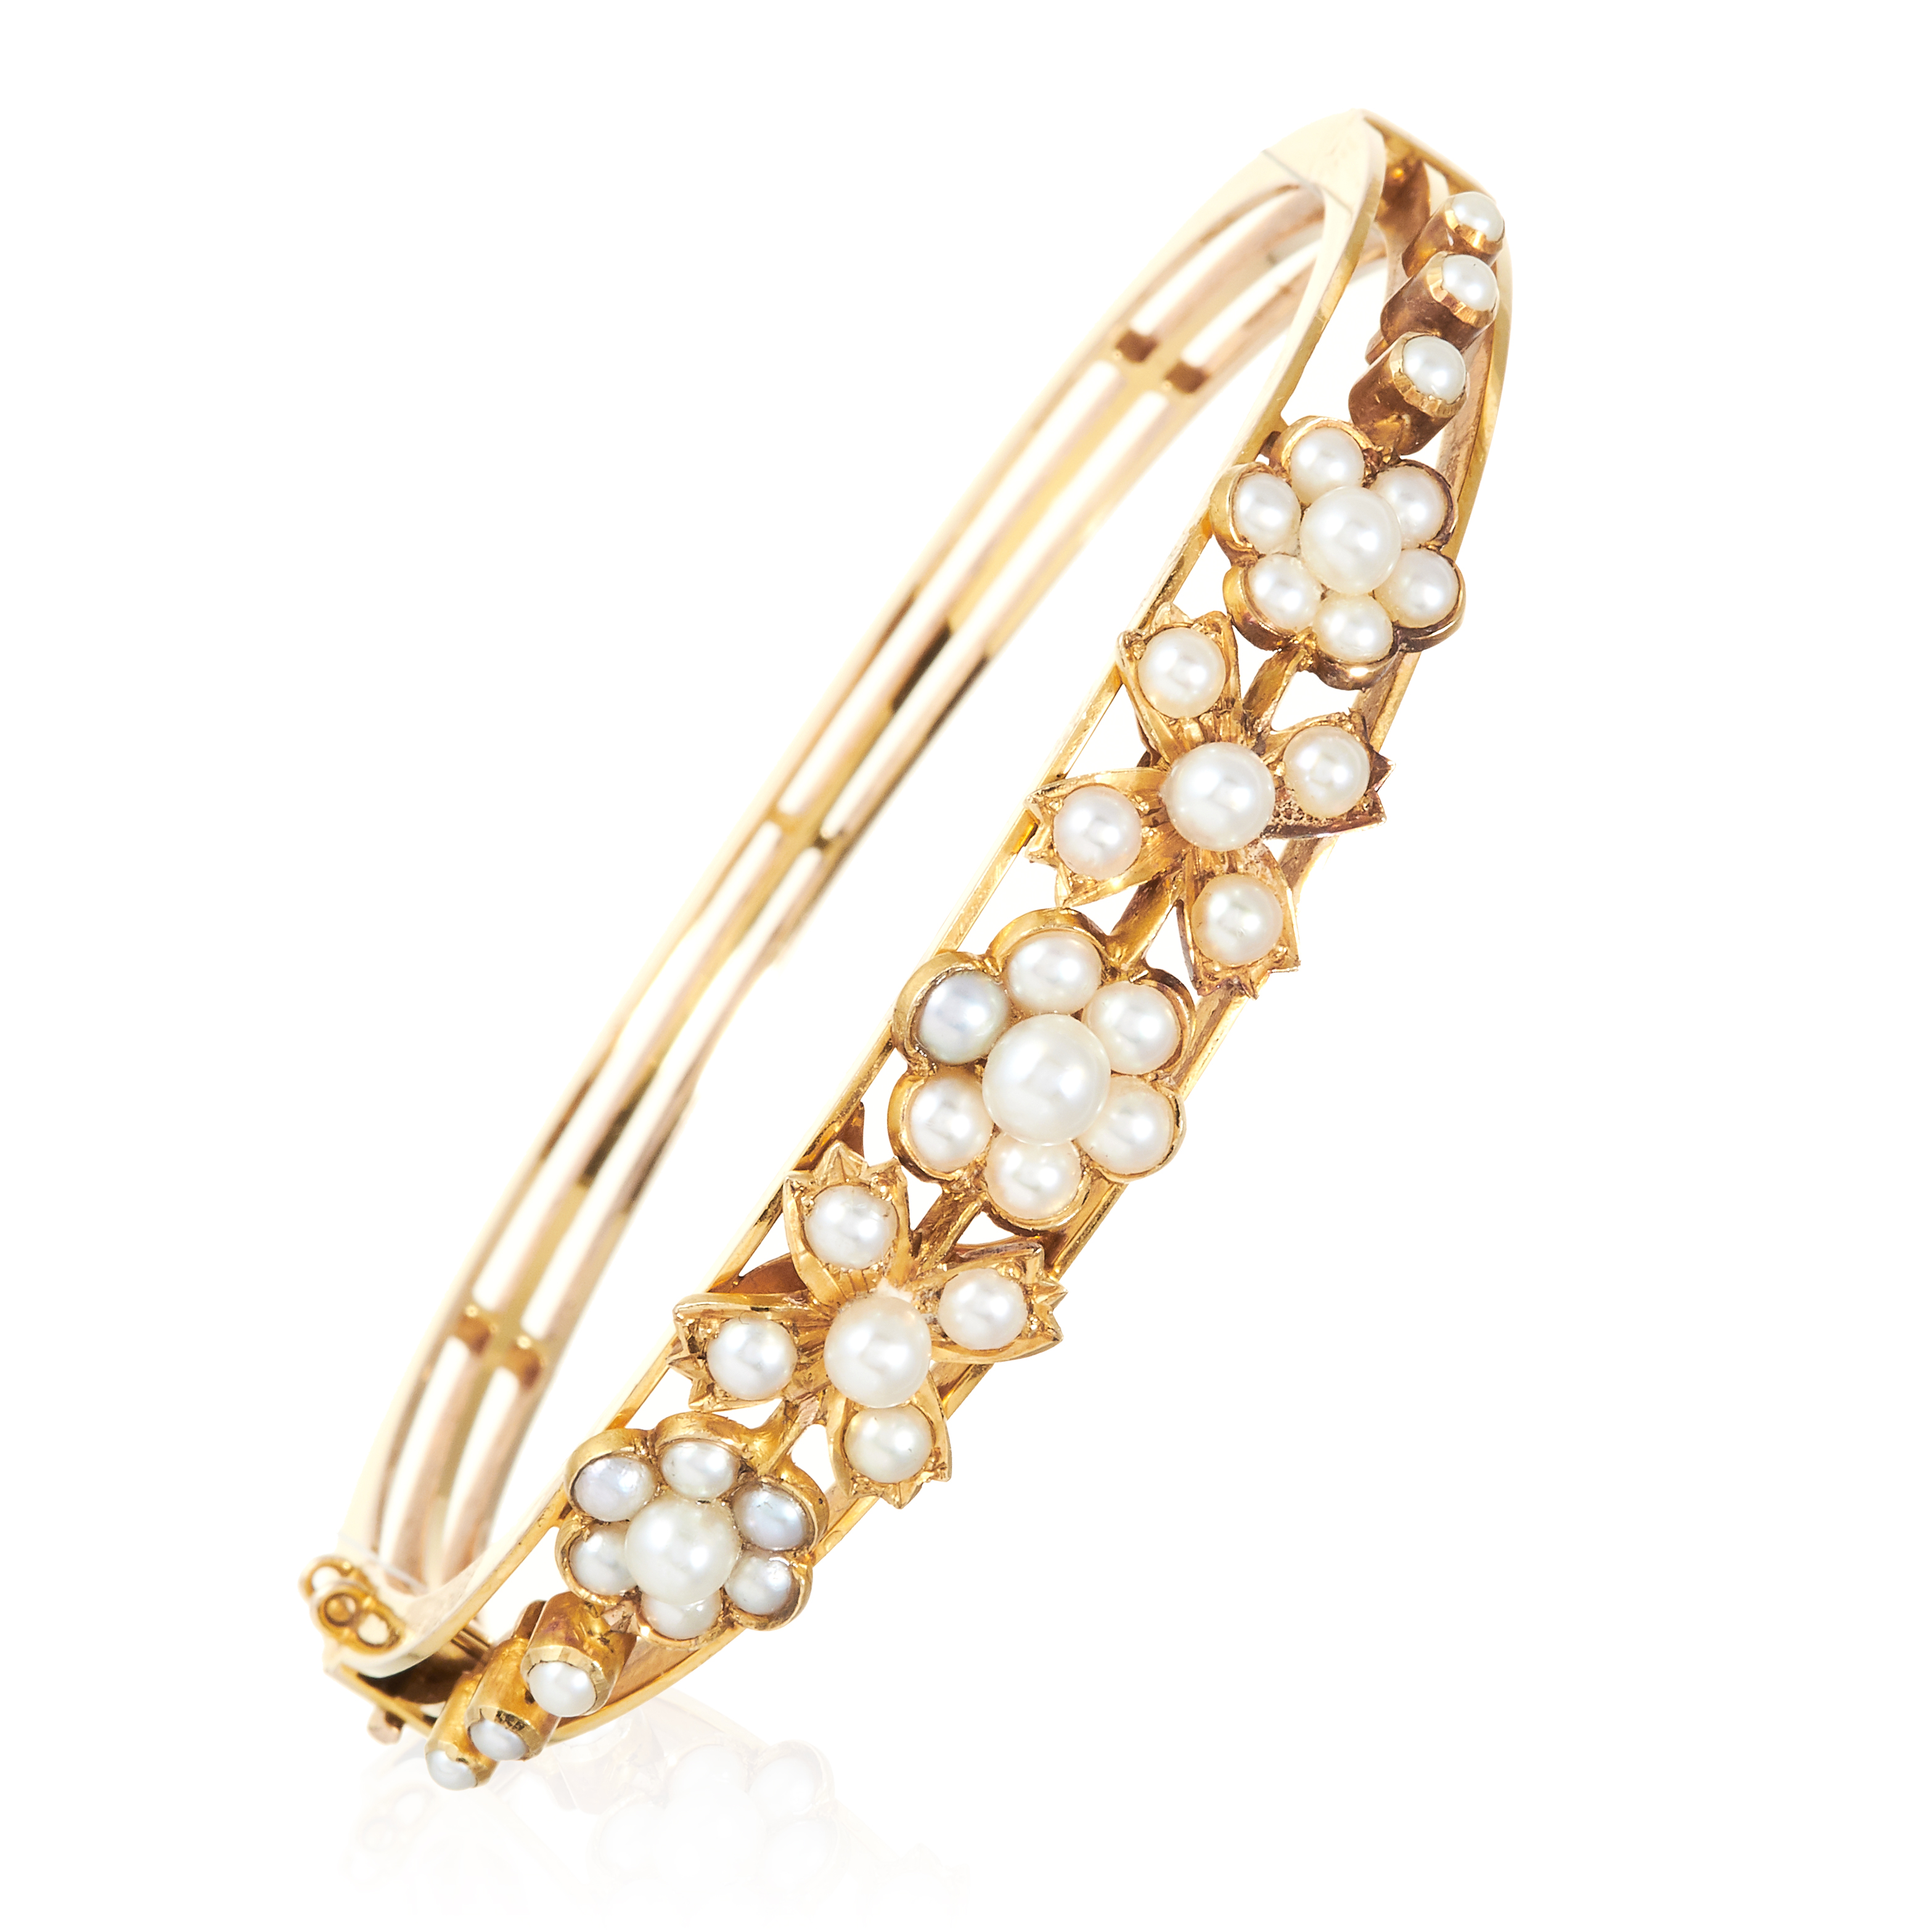 AN ANTIQUE PEARL BANGLE, 19TH CENTURY in high carat yellow gold, the floral and leaf motifs jewelled